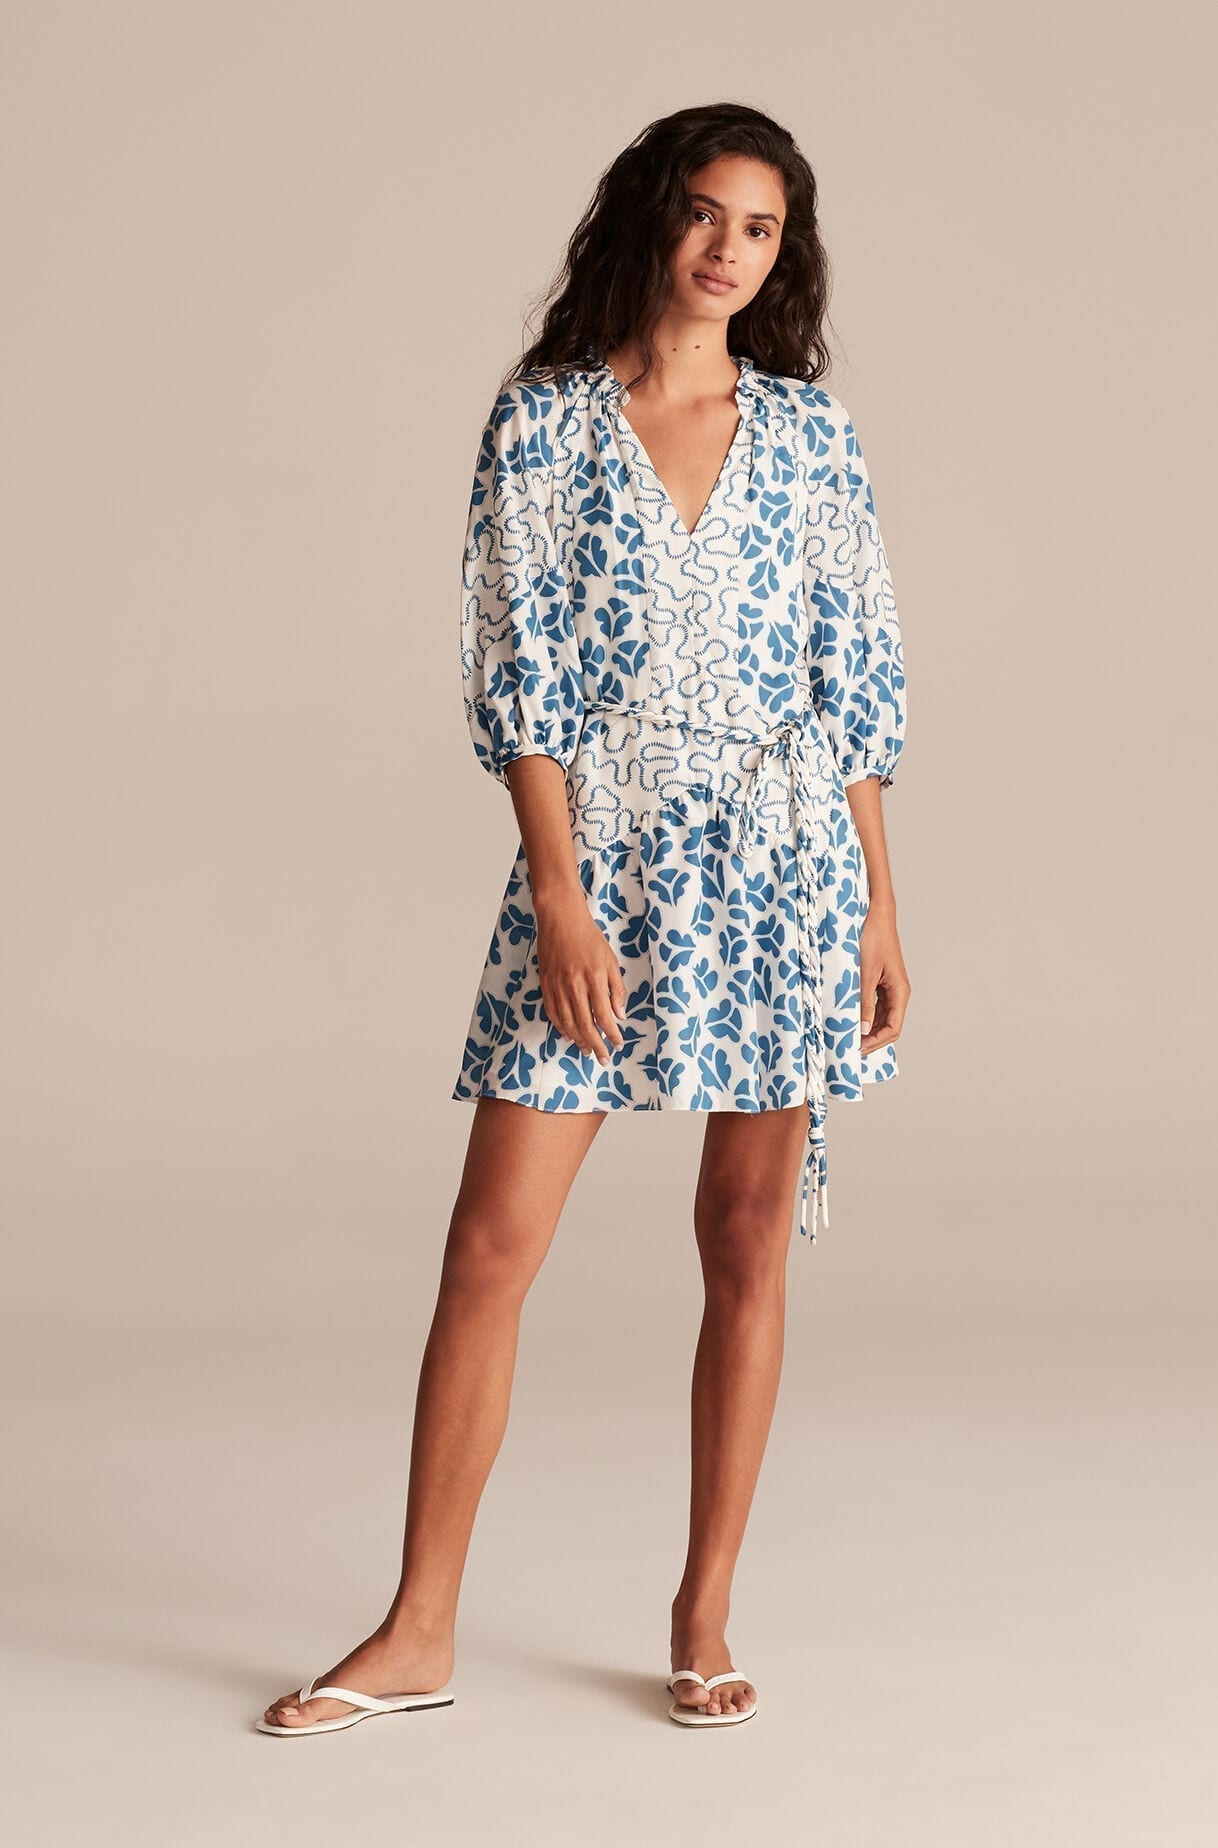 REBECCA TAYLOR Perla Petal Print Mix Short Dress